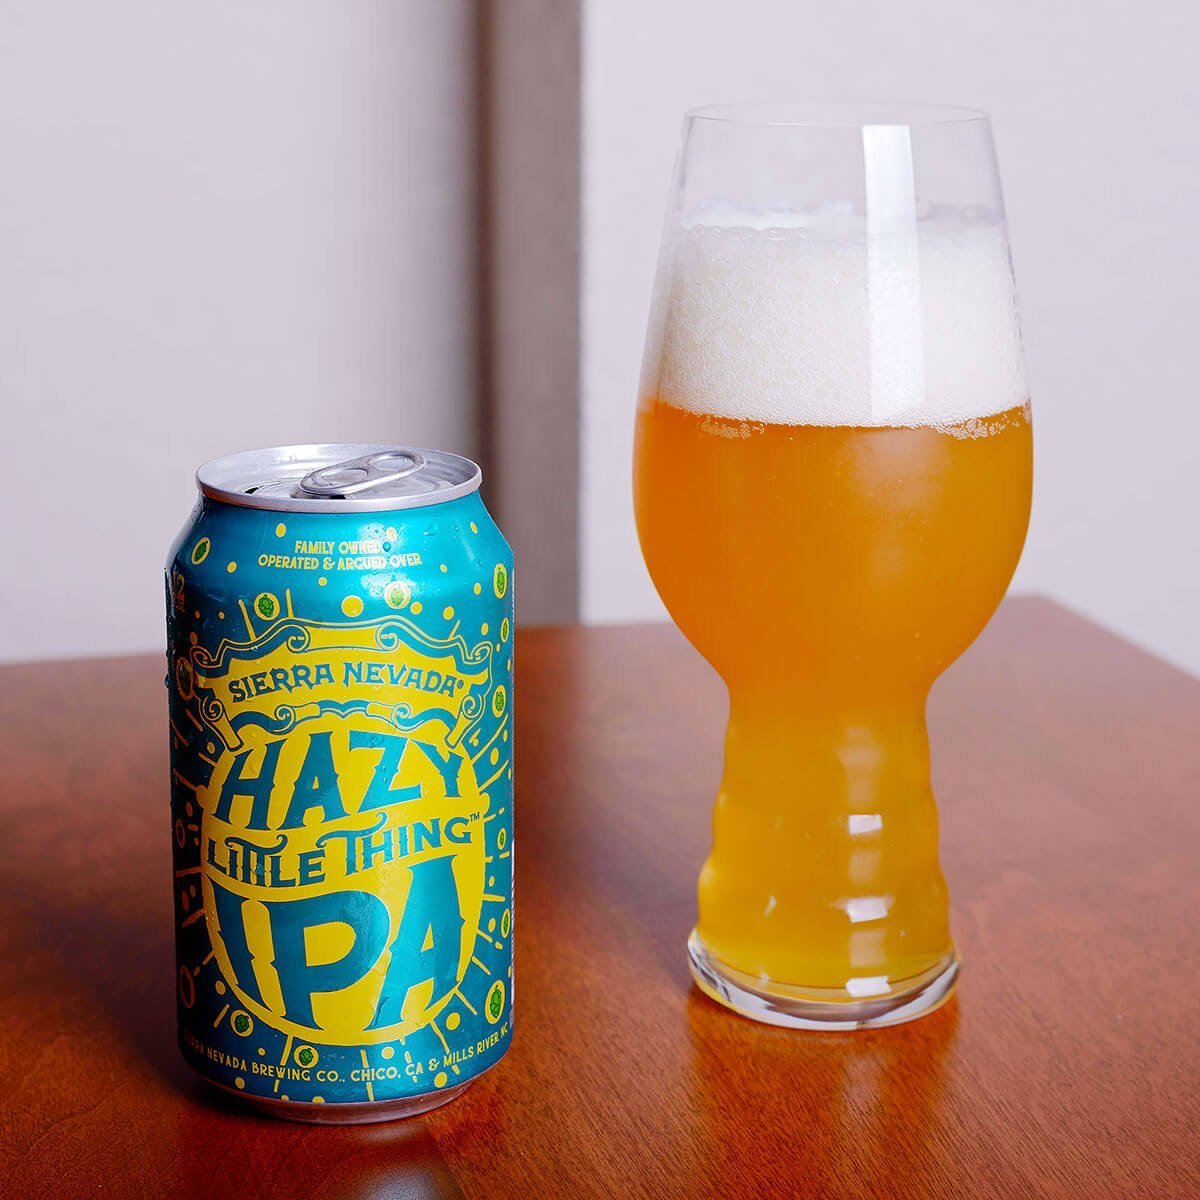 Hazy Little Thing IPA is an American IPA brewed in the New England style by Sierra Nevada Brewing Co. and blends hoppy citrus, pine, and resin with tropical fruit.